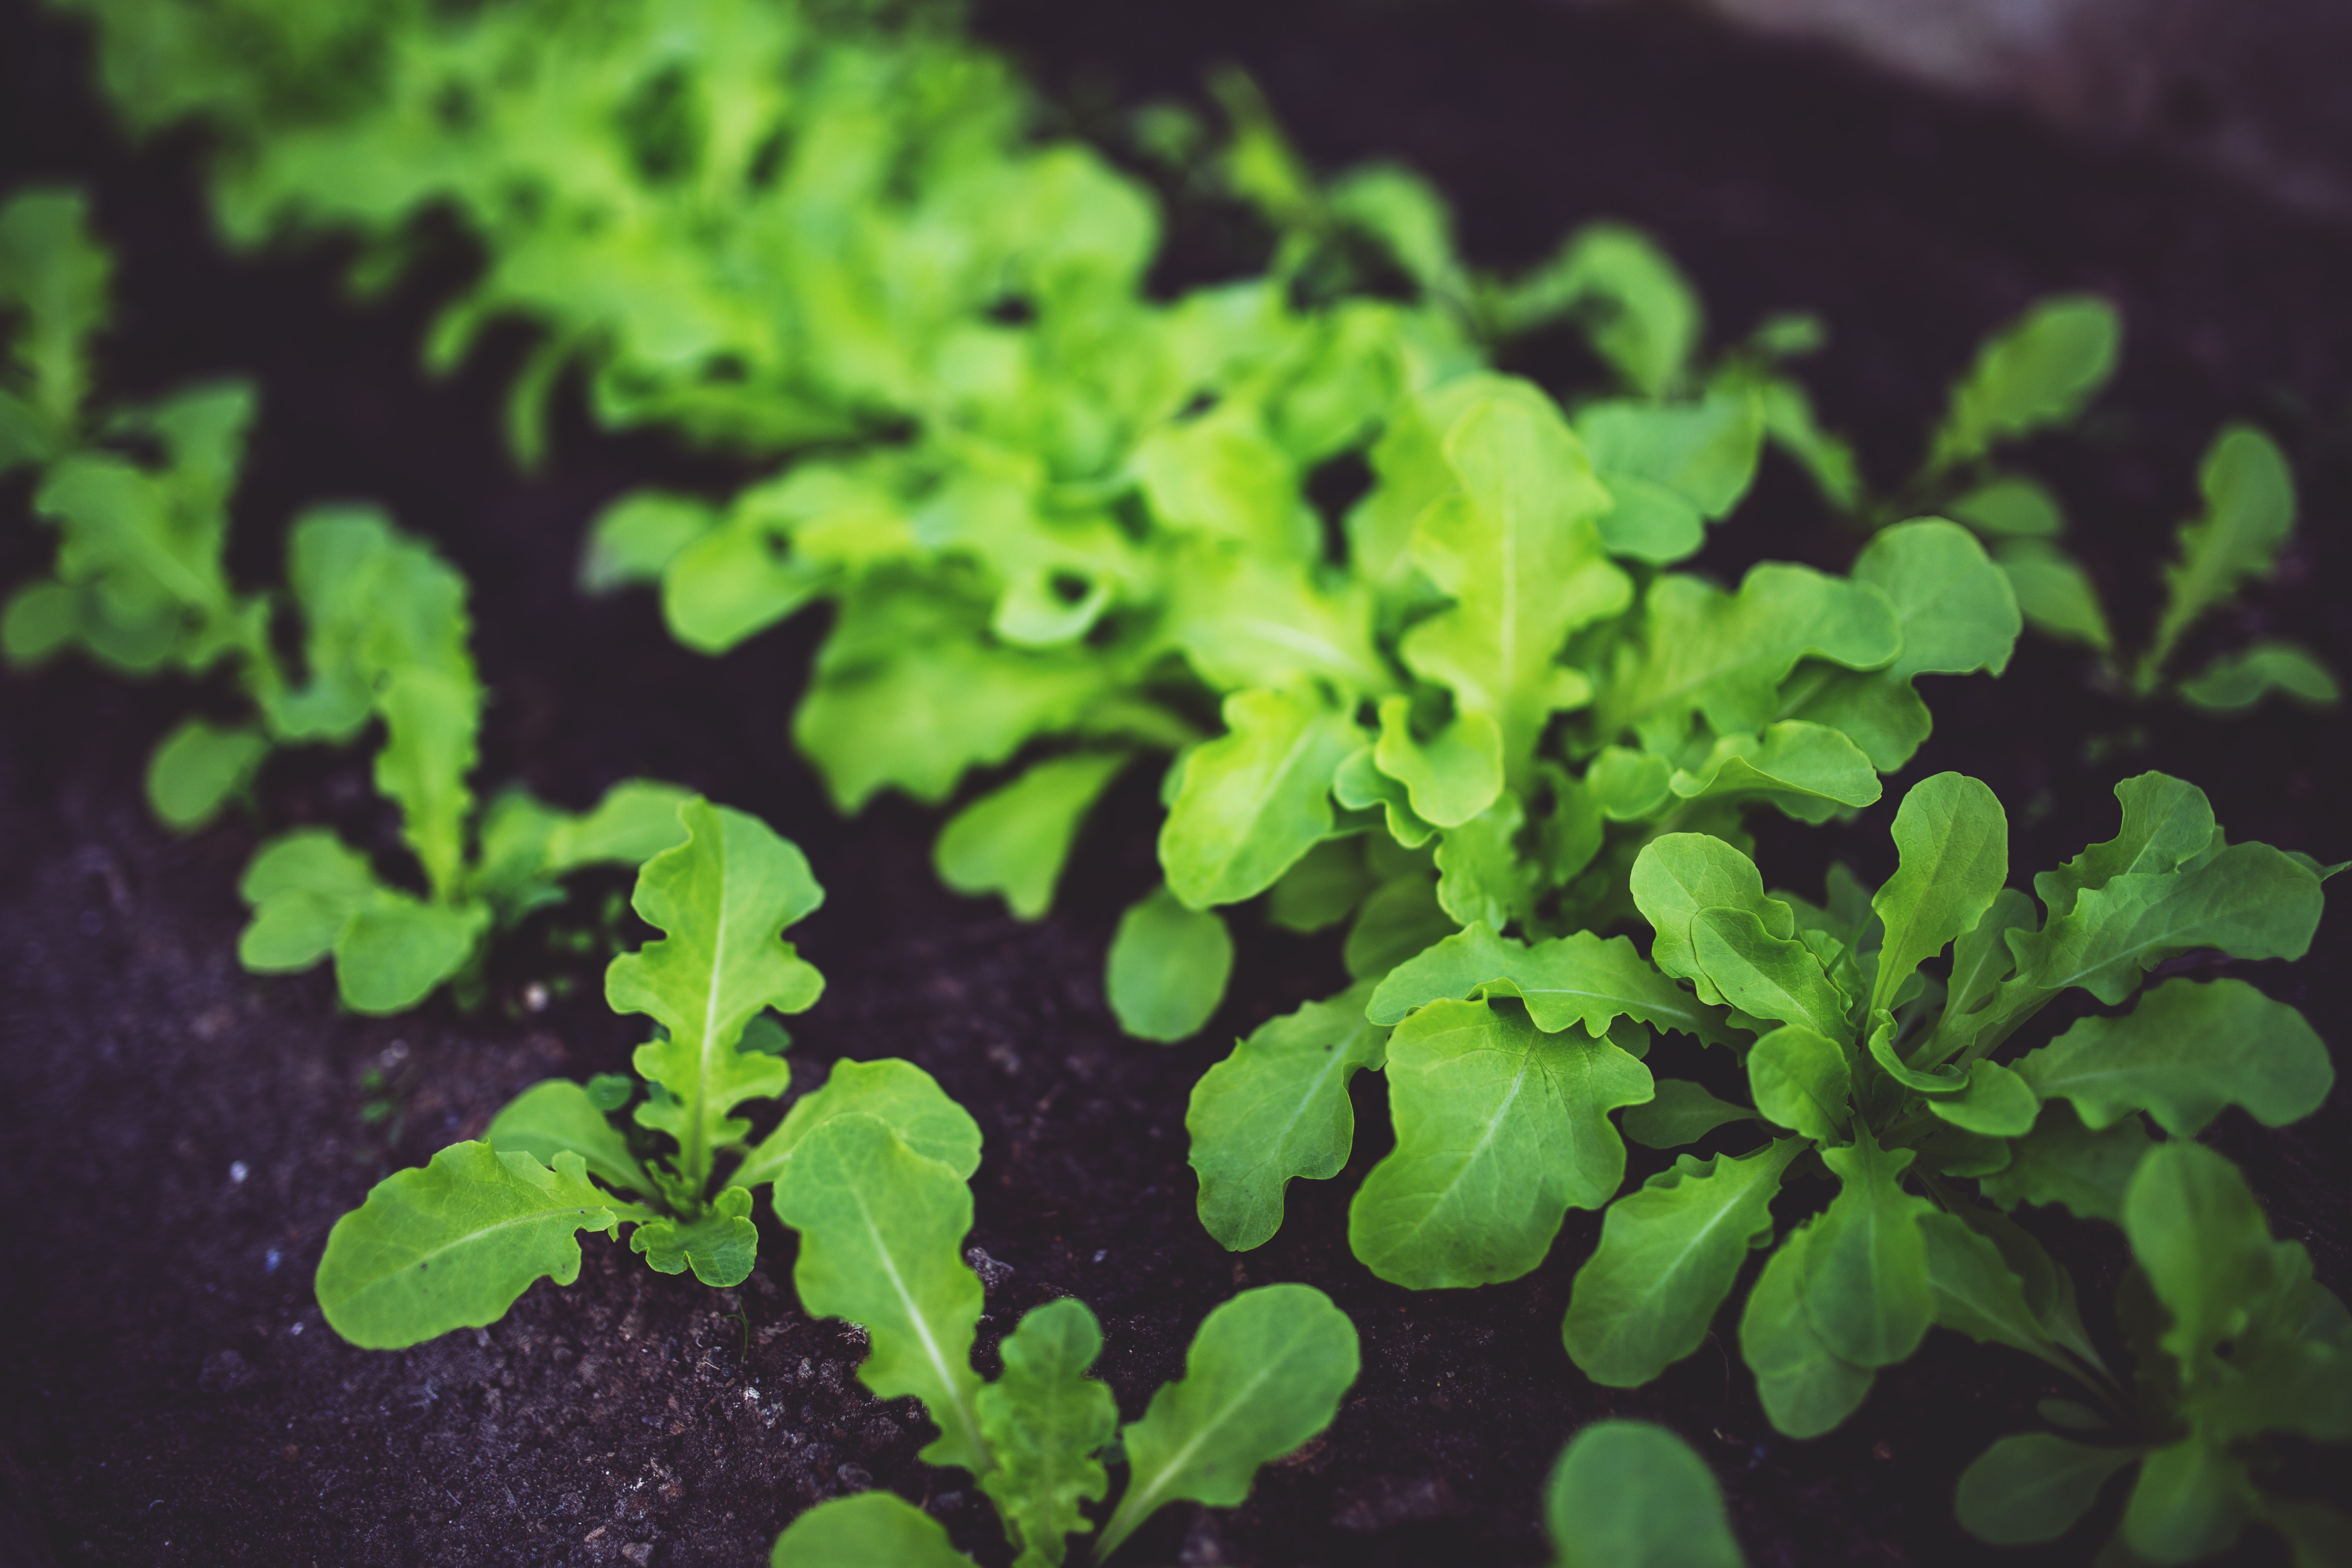 Young salad, Salad, Plant, Lush, Soil, HQ Photo